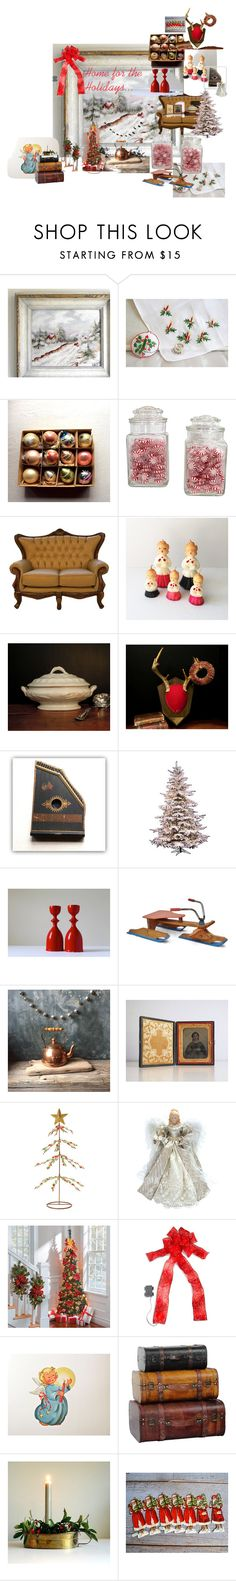 """home for the holidays"" by gentlemanlypursuits ❤ liked on Polyvore featuring interior, interiors, interior design, home, home decor, interior decorating, Hanley, Rustico, Oak Street Wholesale and Improvements"